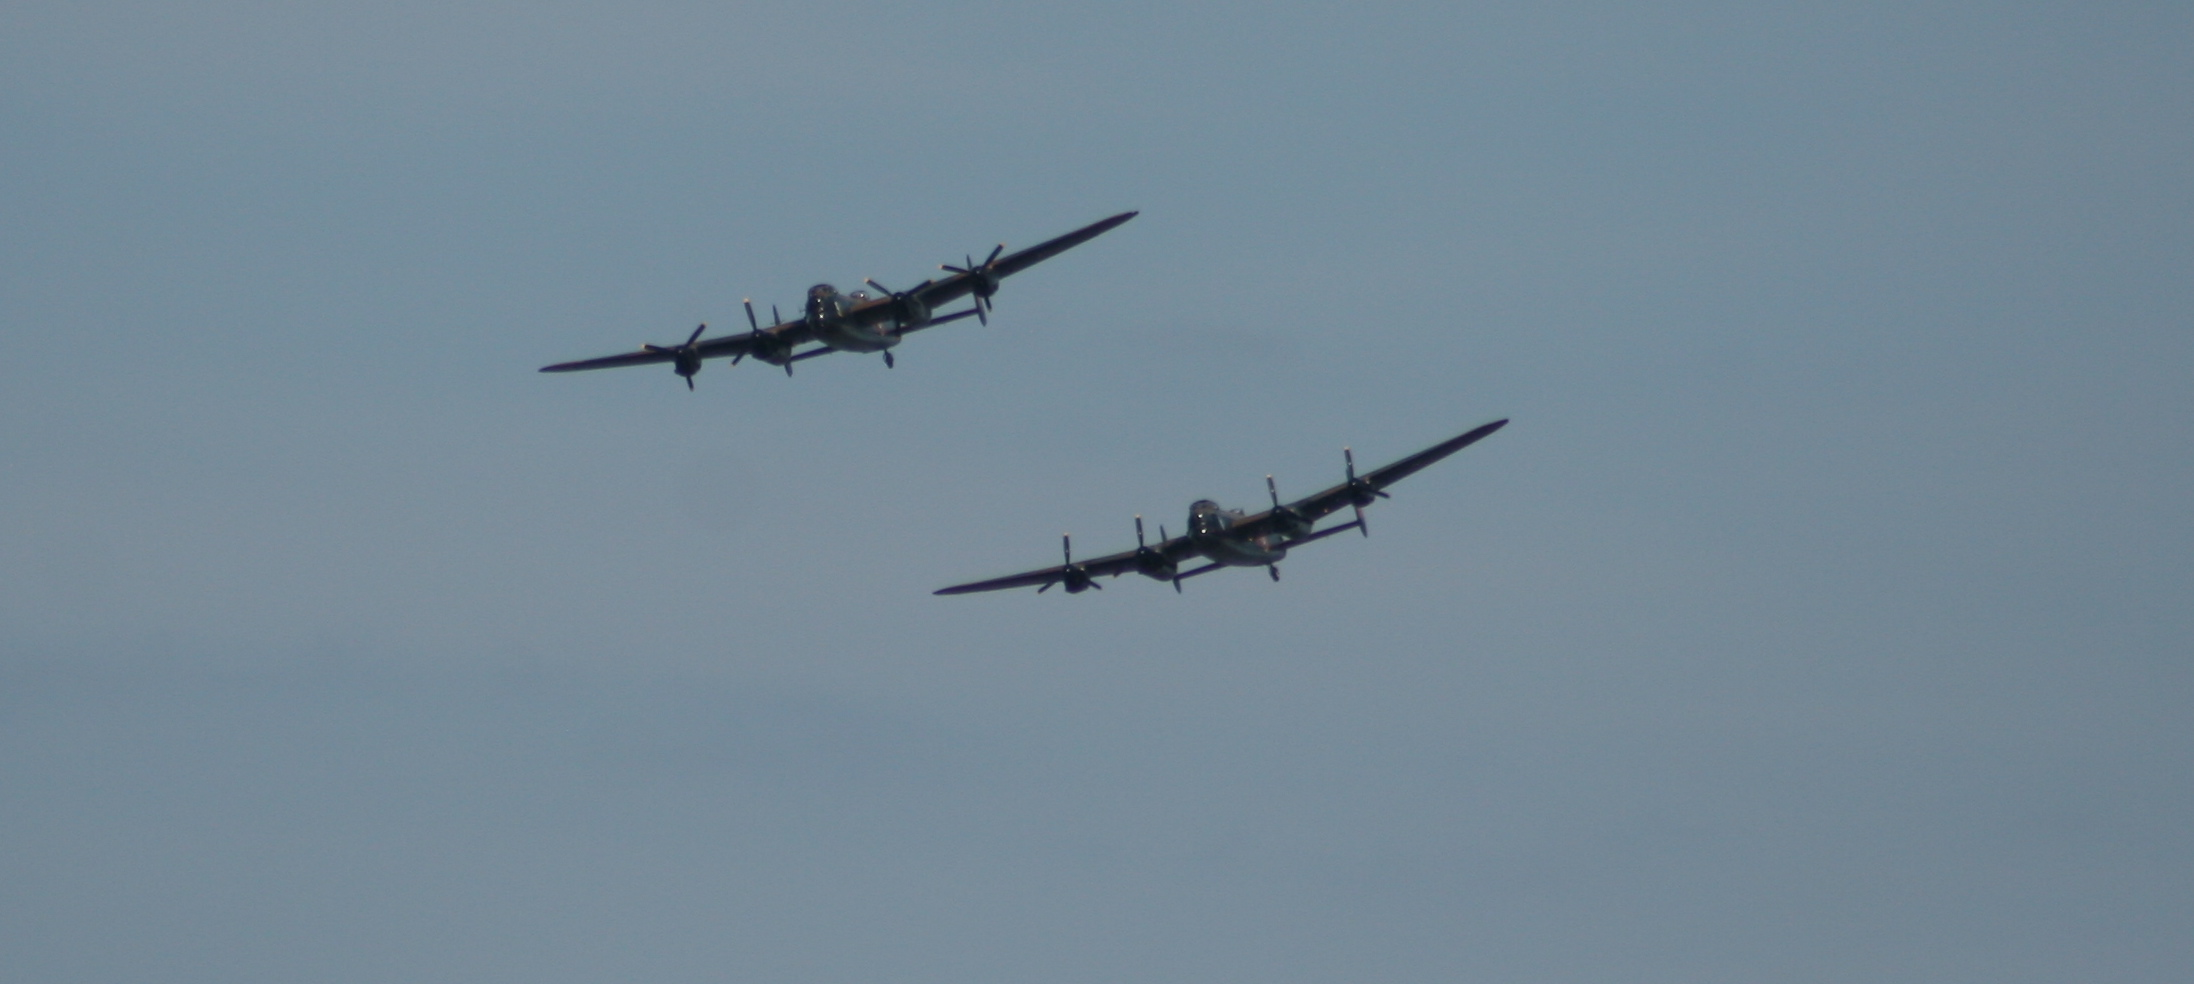 The LANCASTER BOMBERS